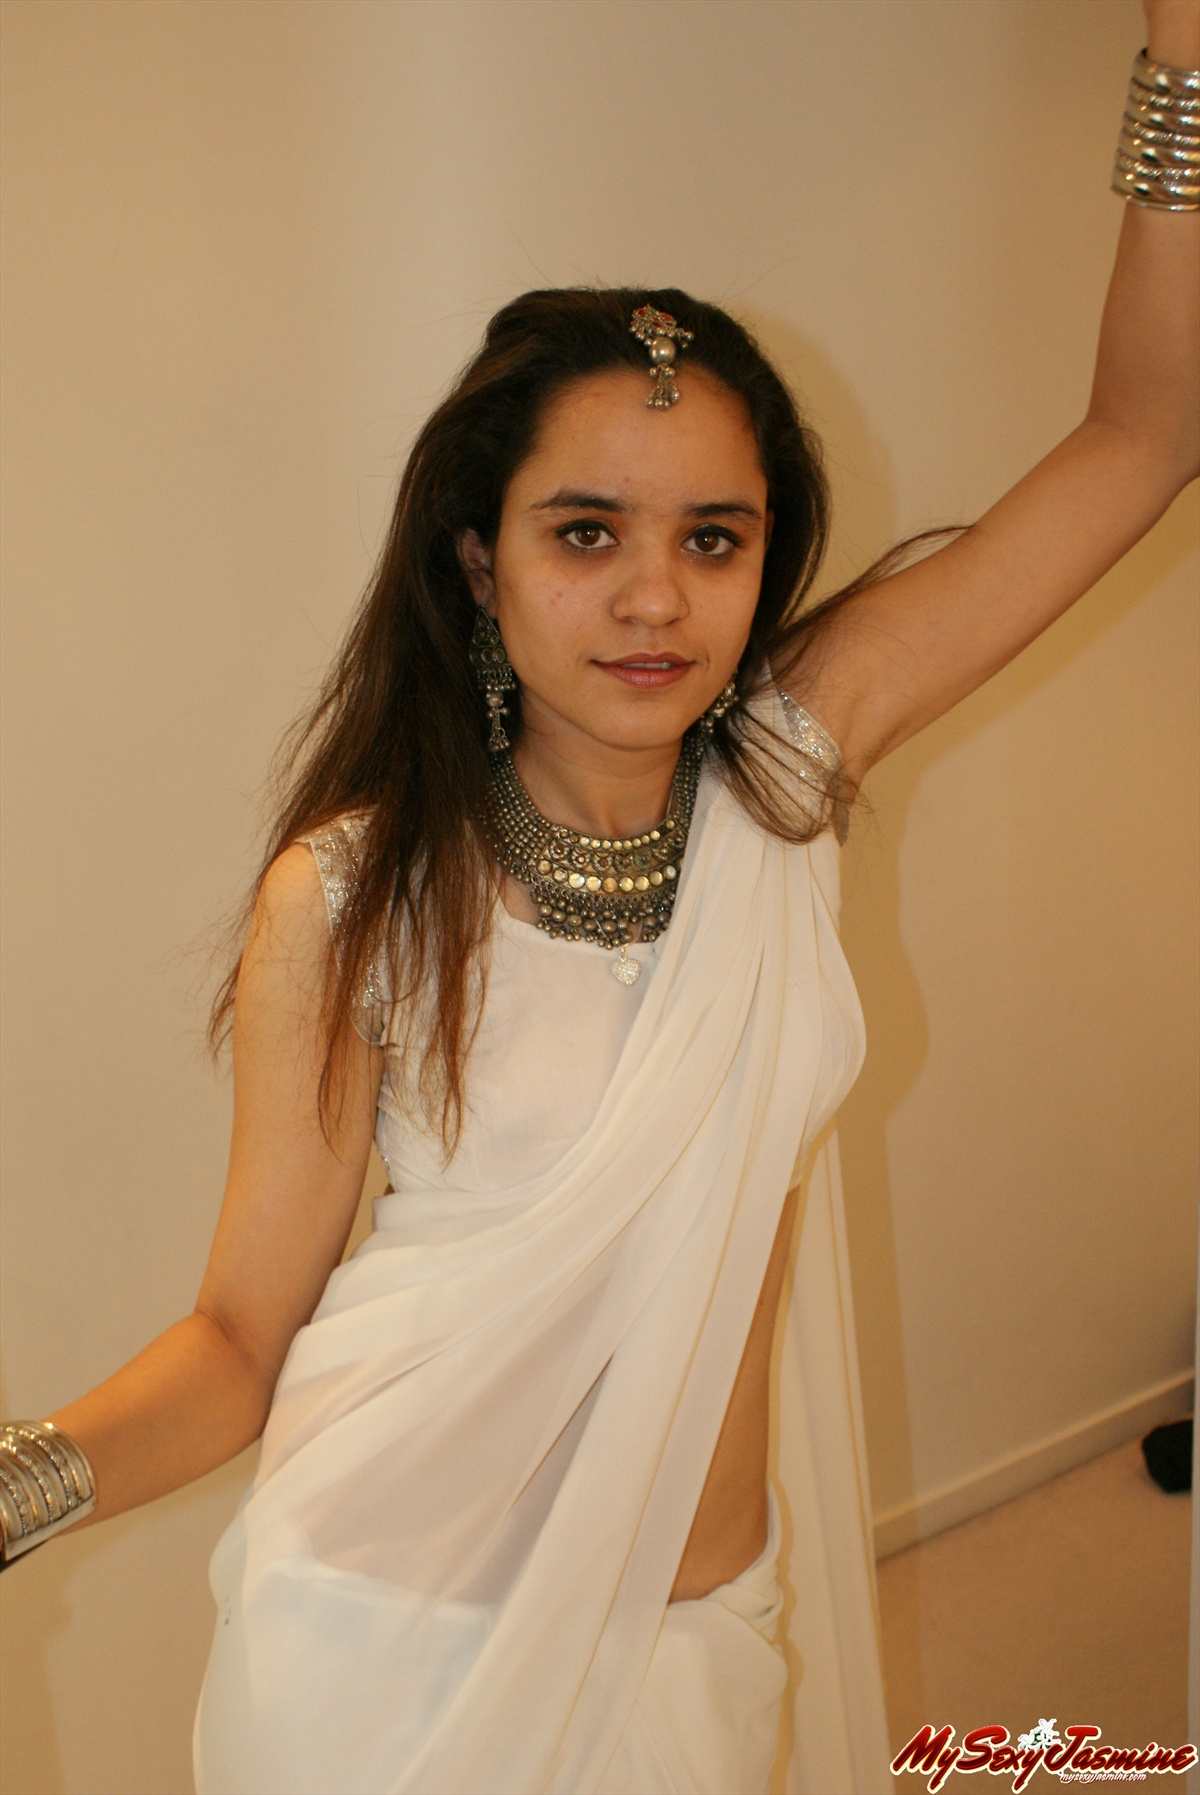 Pic gal 0026. Jasmine in white indian saree looking hot teasing her man